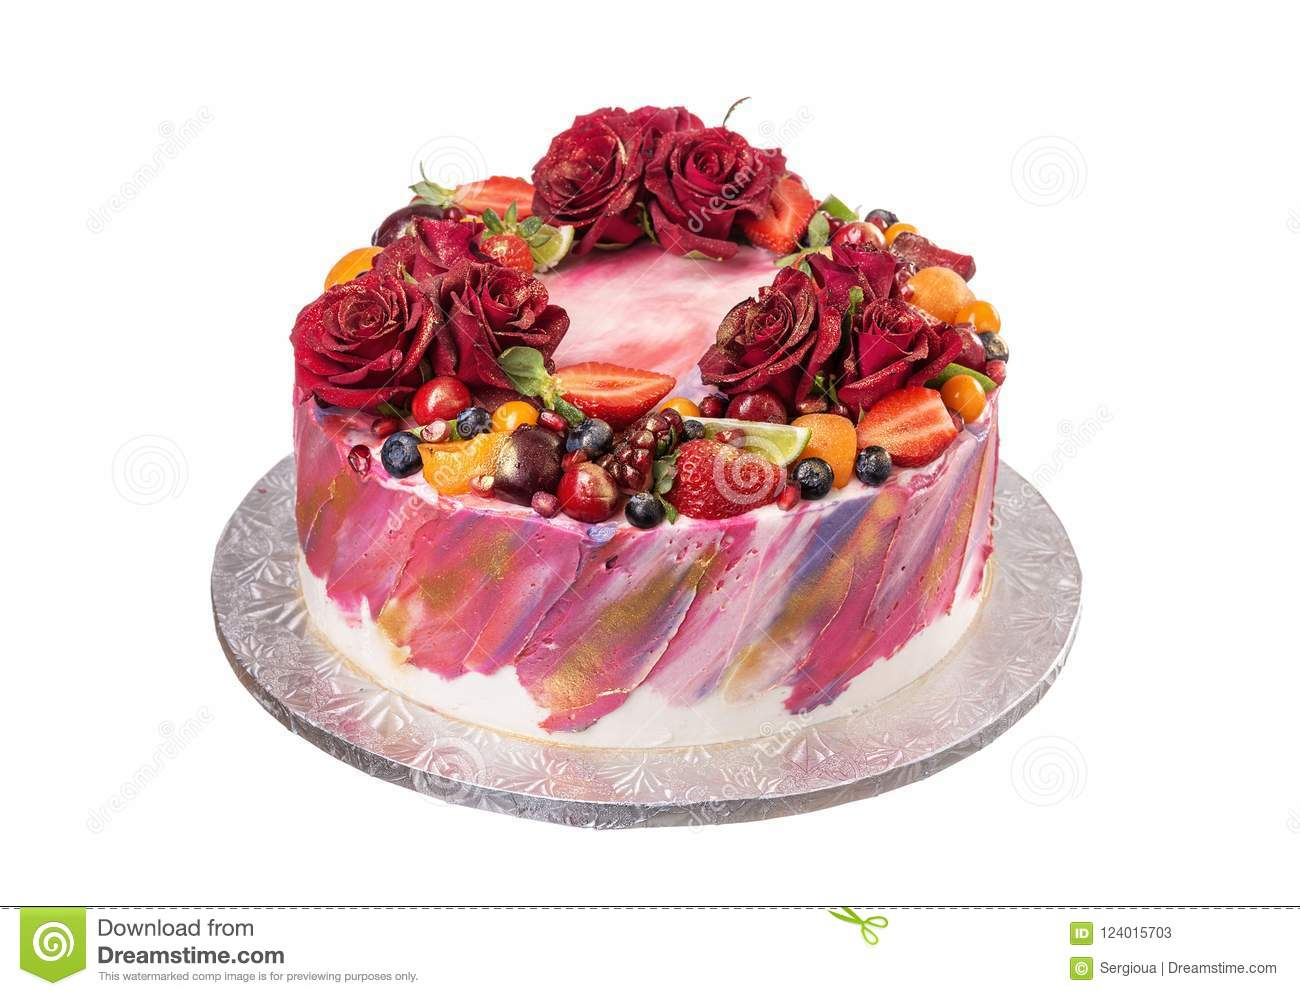 Delicious Cake Decorated With Flowers And Fruits On Birthday